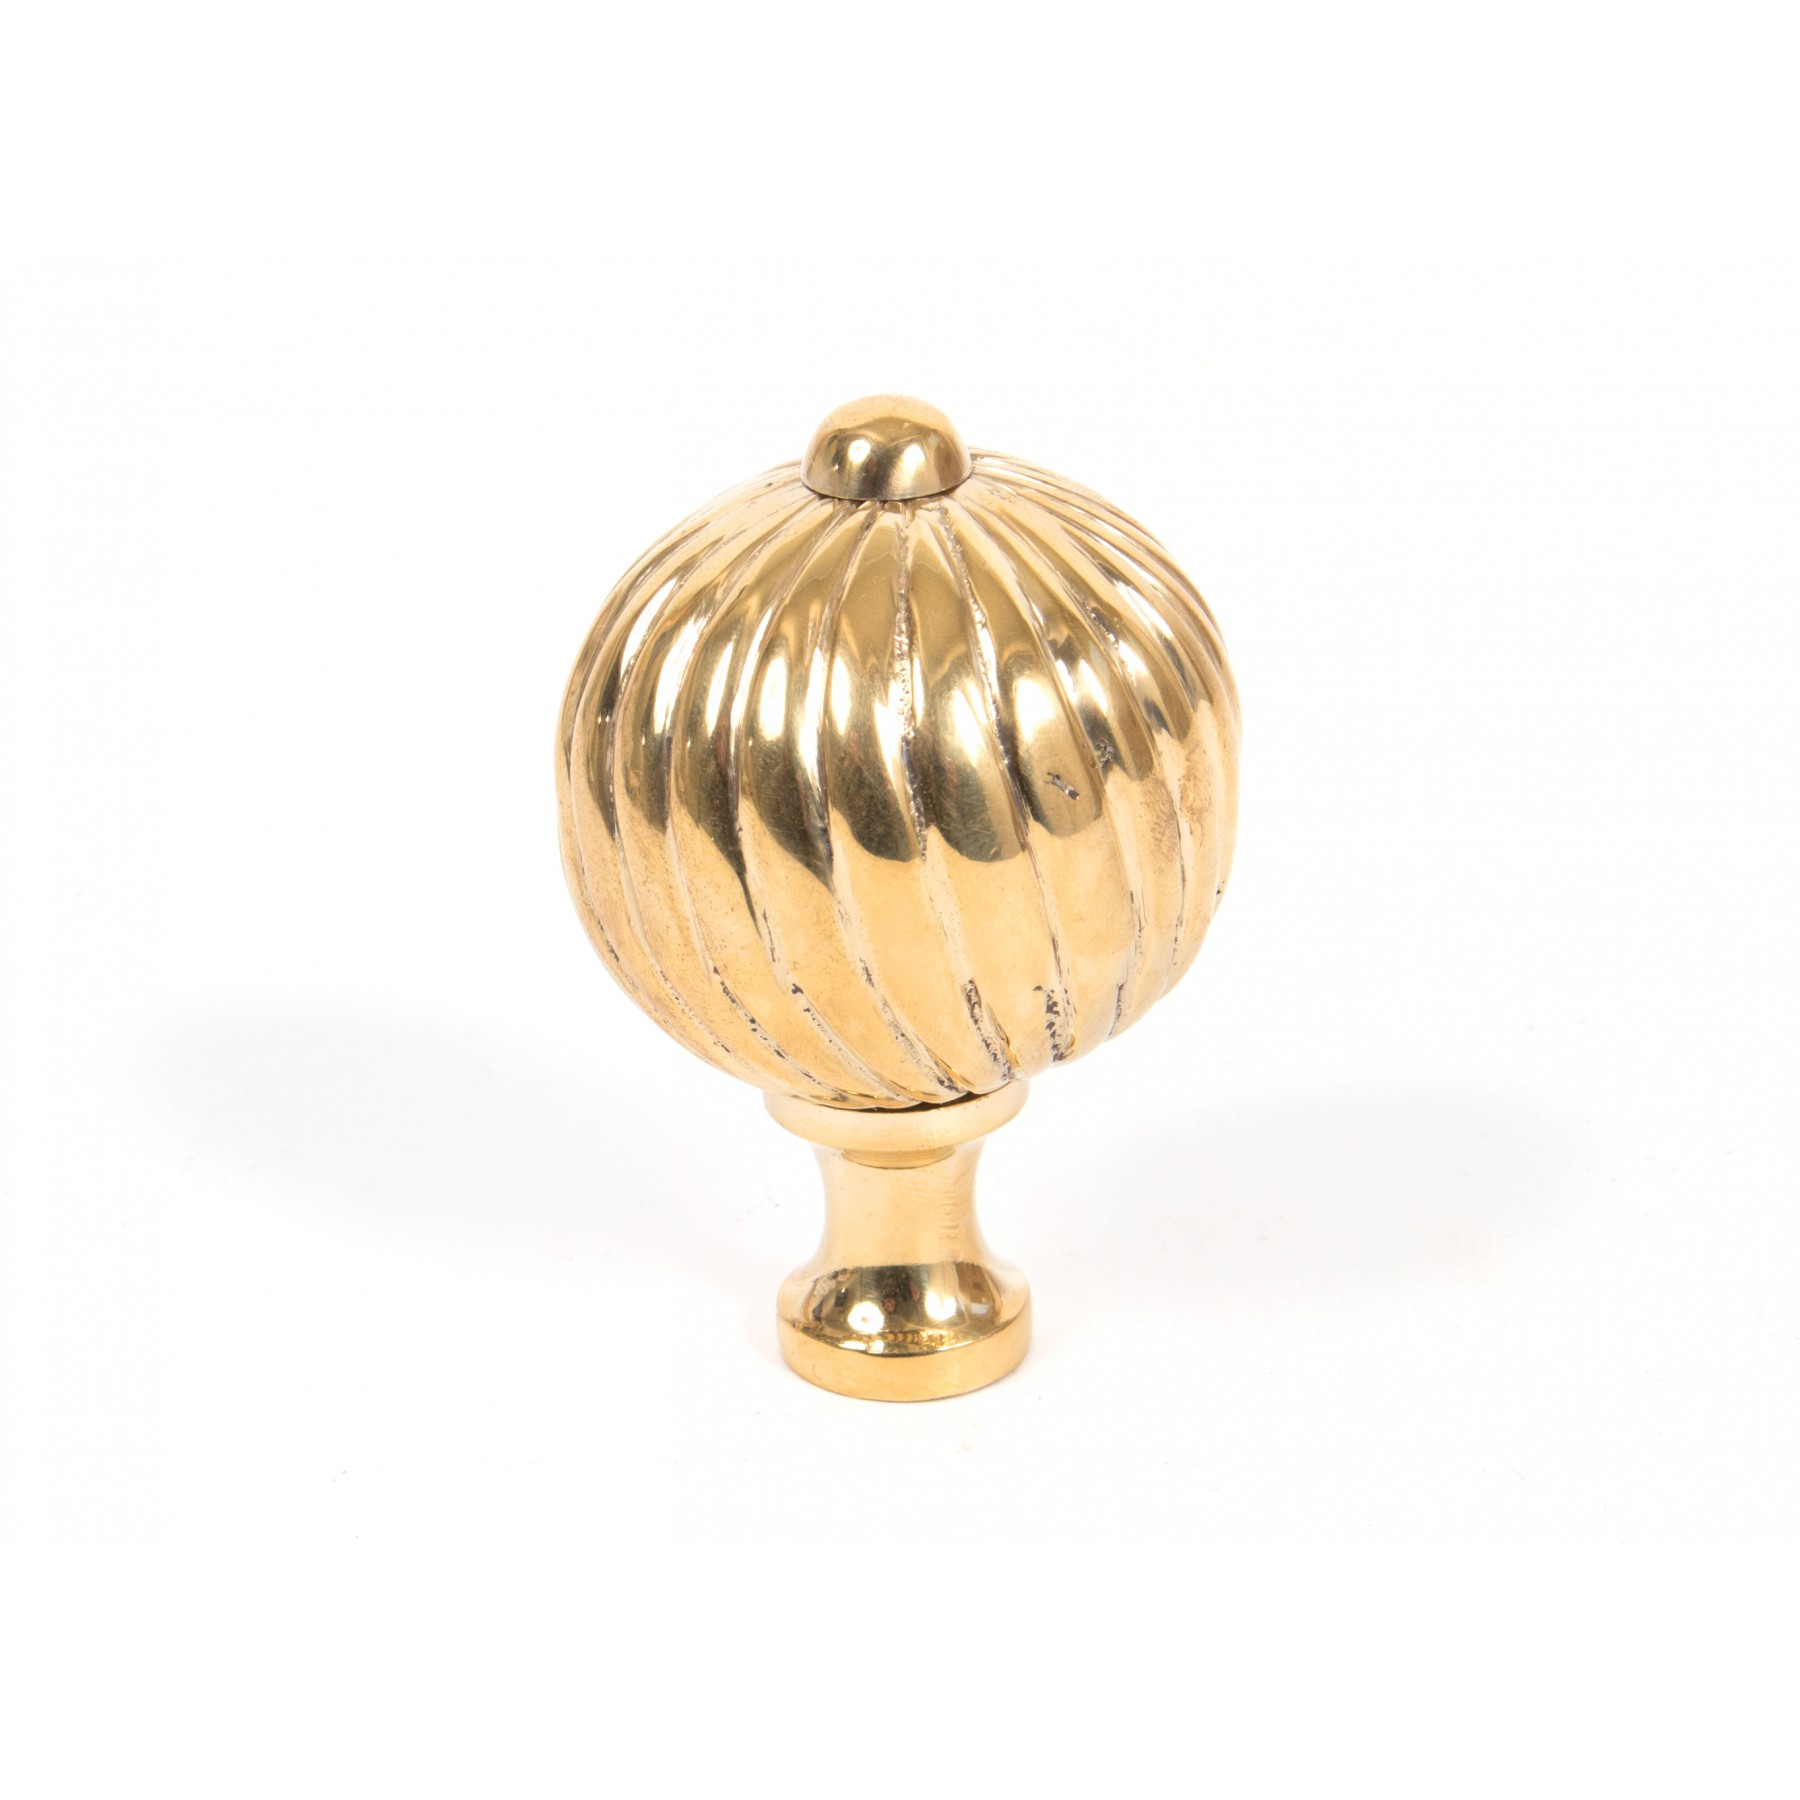 Polished Brass Spiral Cabinet Knob (Large)